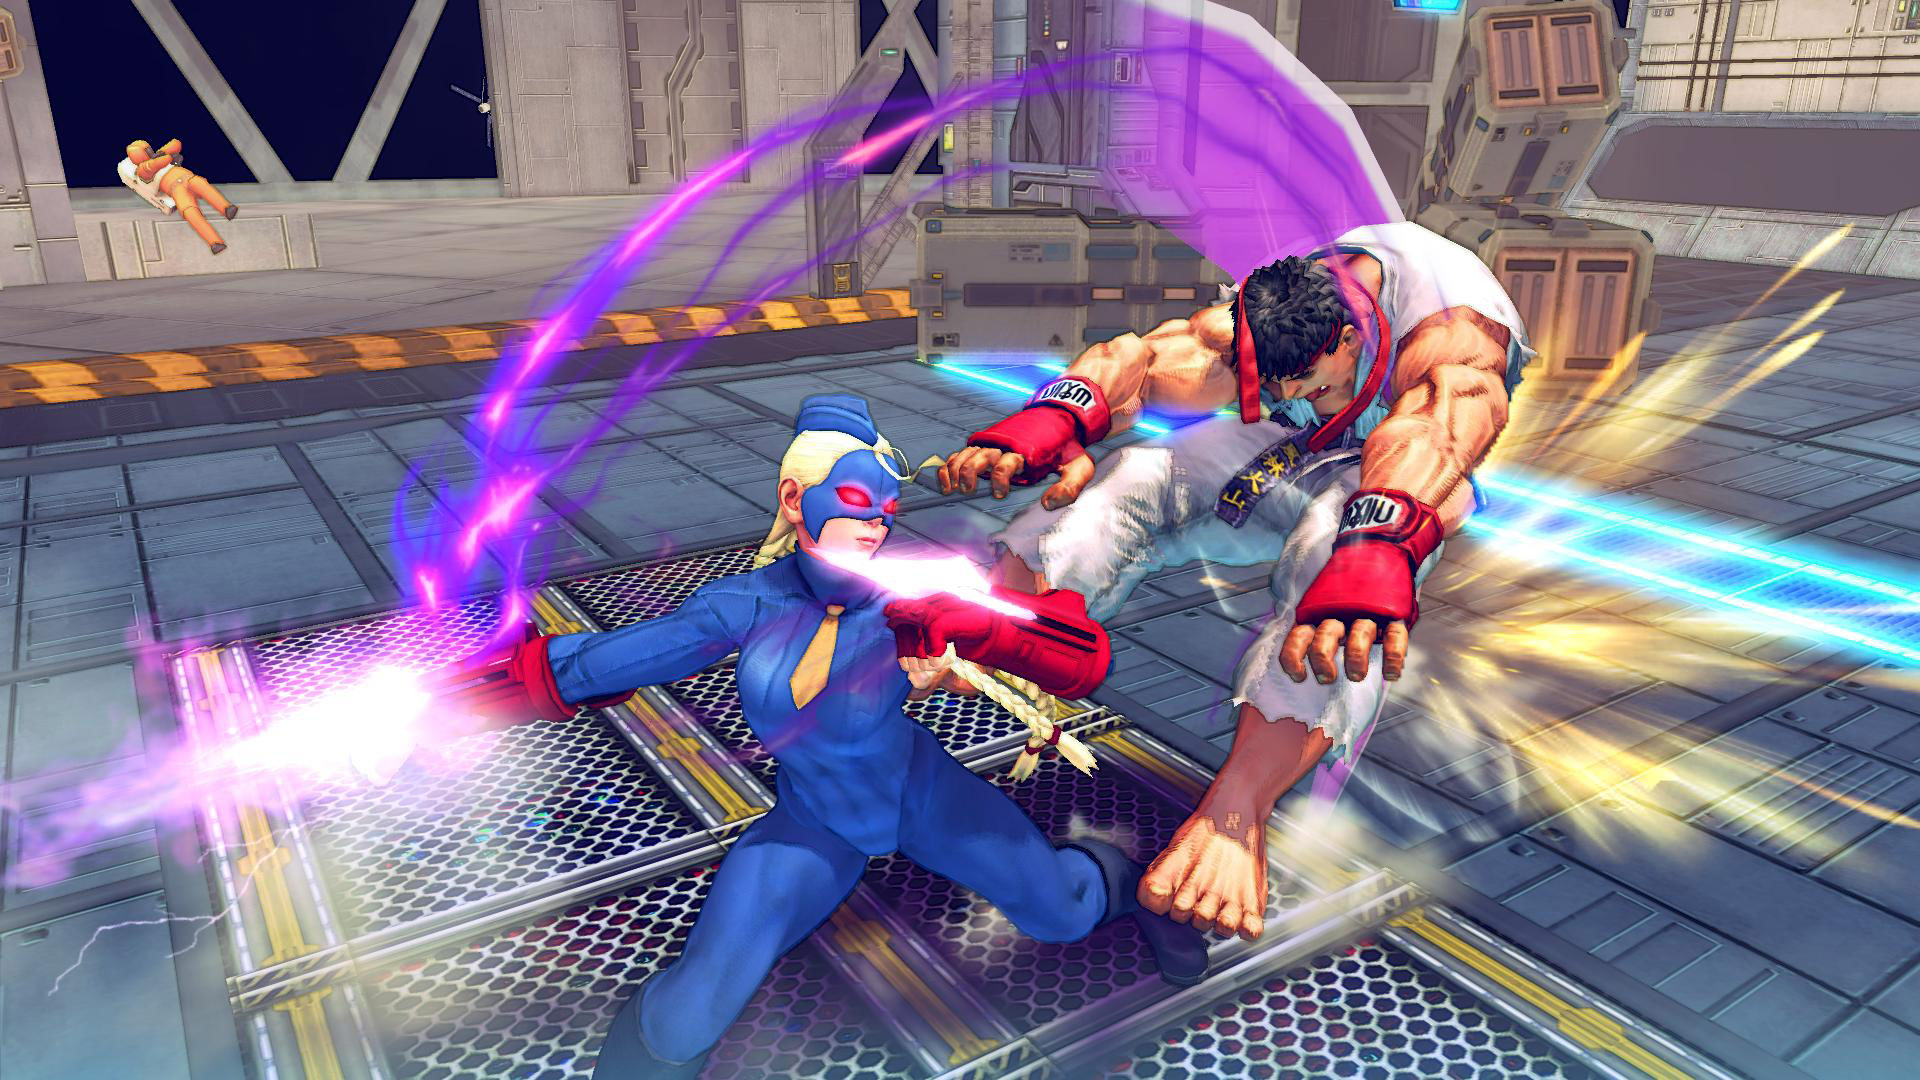 Decapre artwork and screen shots for Ultra Street Fighter 4 image #9